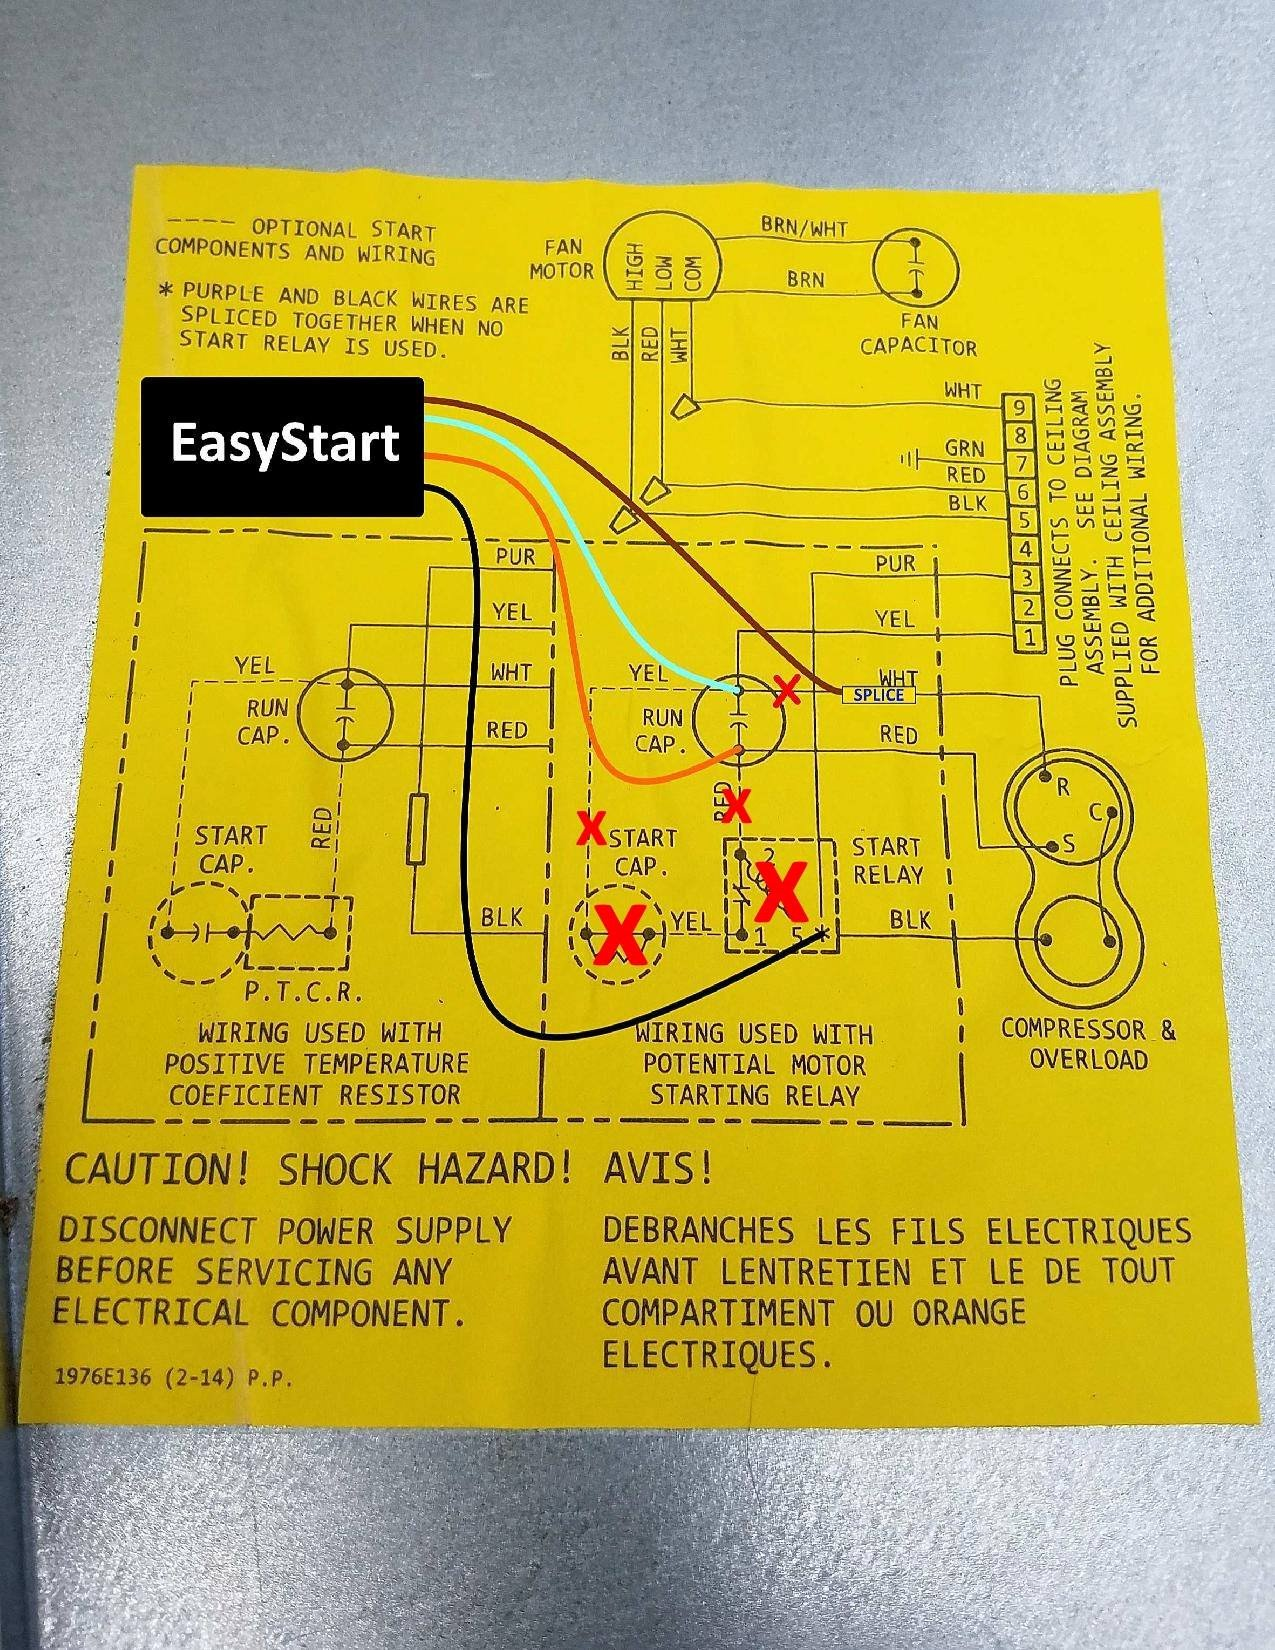 hight resolution of 2366b wiring diagram coleman wiring diagram local 2366b wiring diagram coleman wiring diagram info 2366b wiring